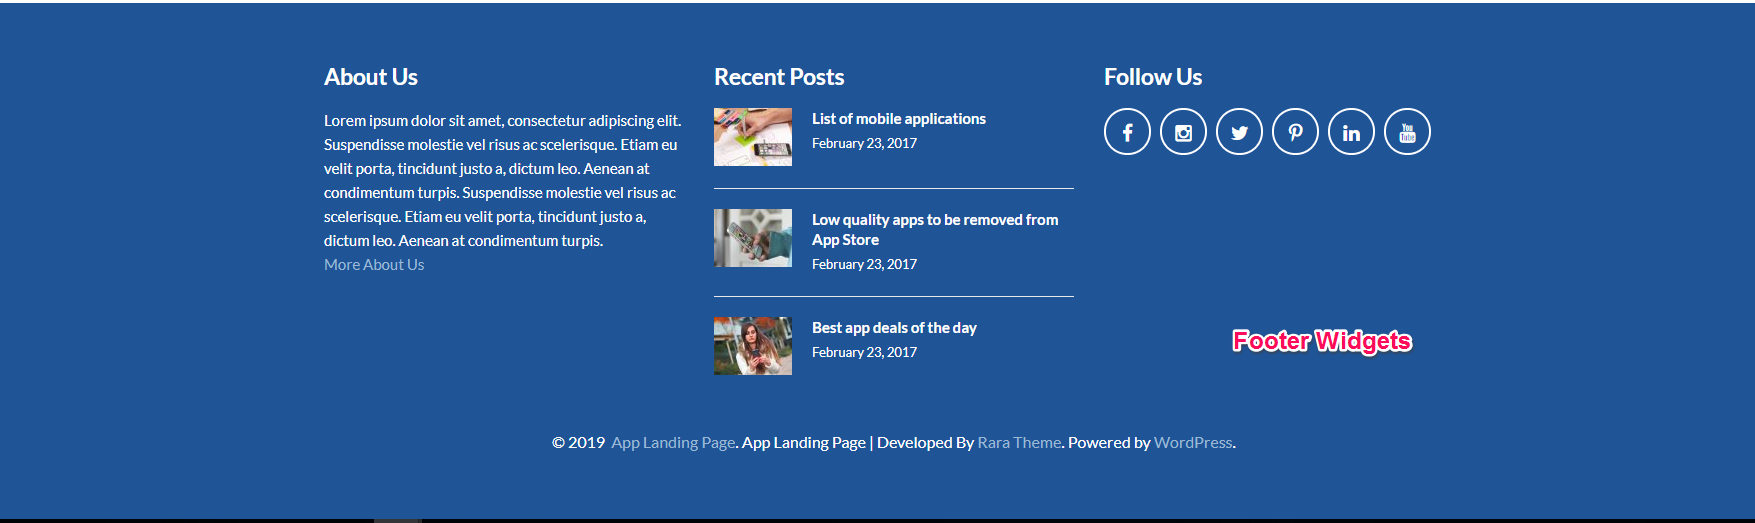 footer widgets for app landing page